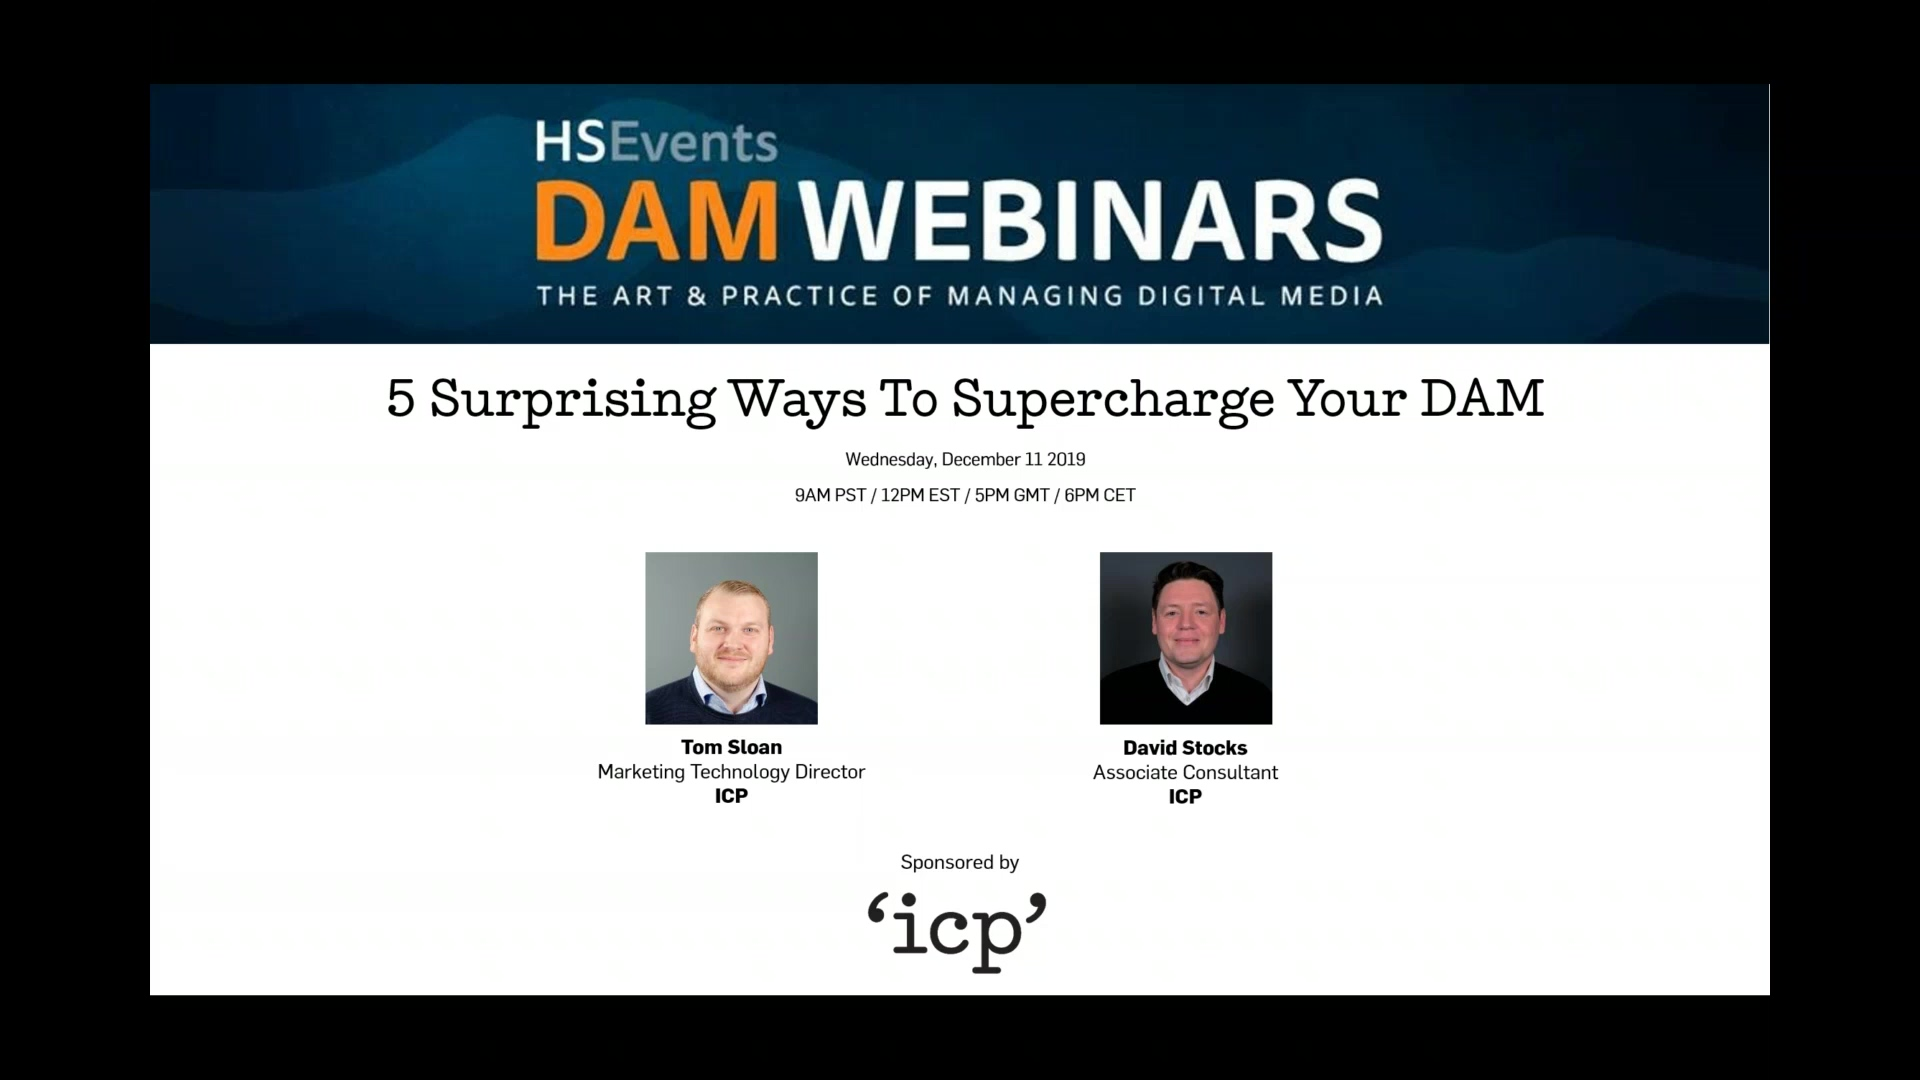 6) 11 December 2019 - 5 Surprising Ways To Supercharge Your DAM